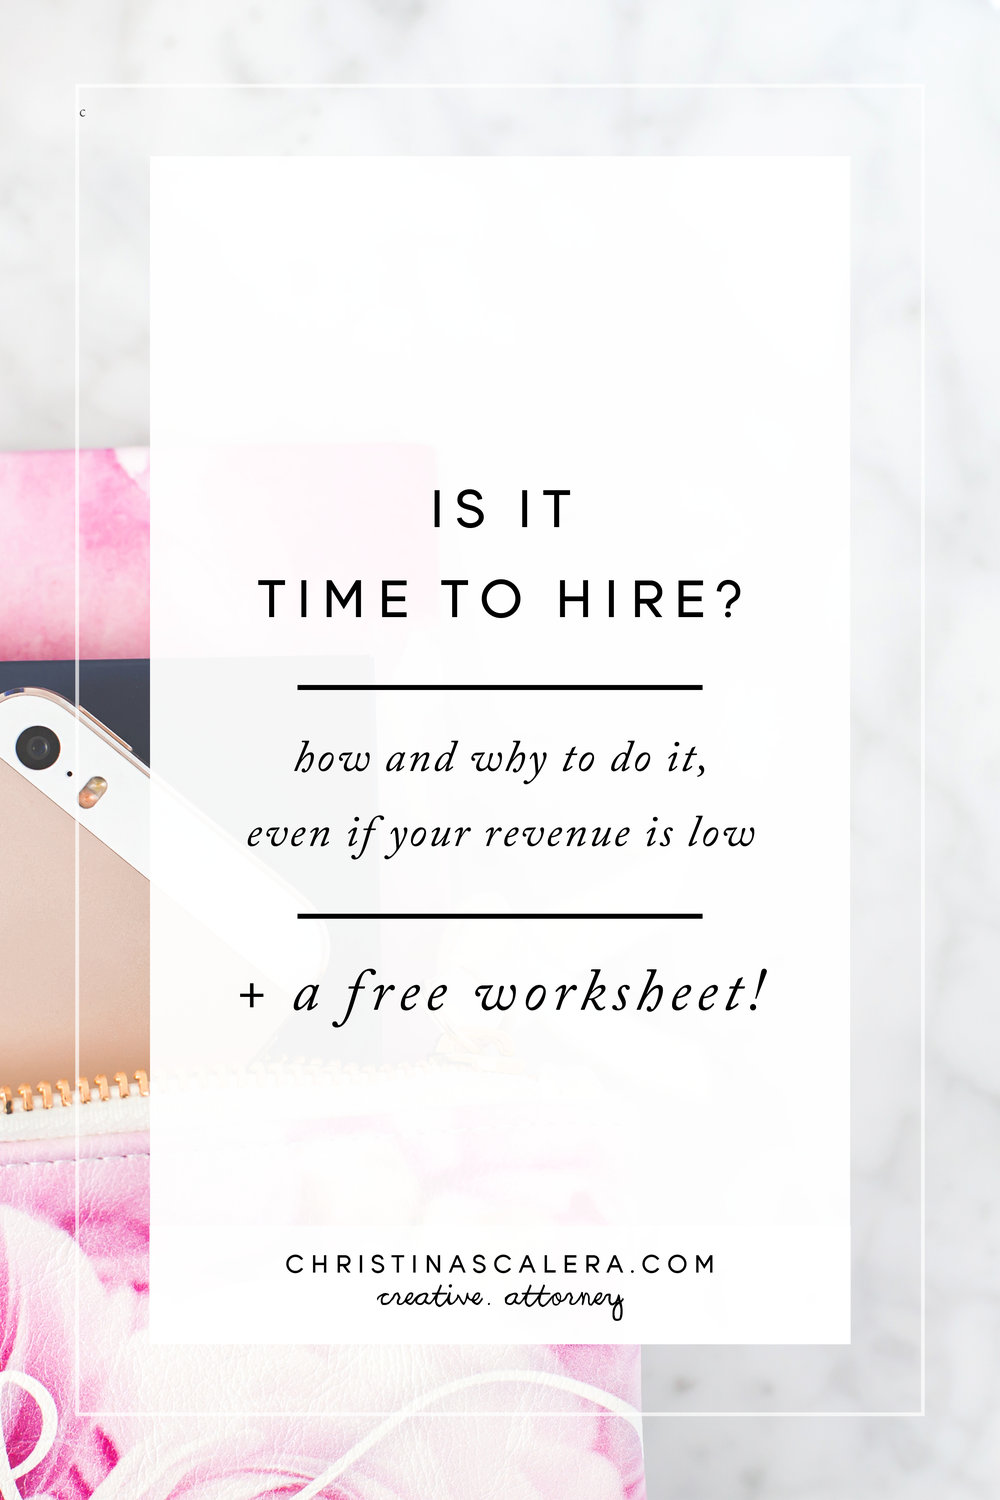 Is it time to hire? How and why to do it, even if your revenue is low + a free worksheet!